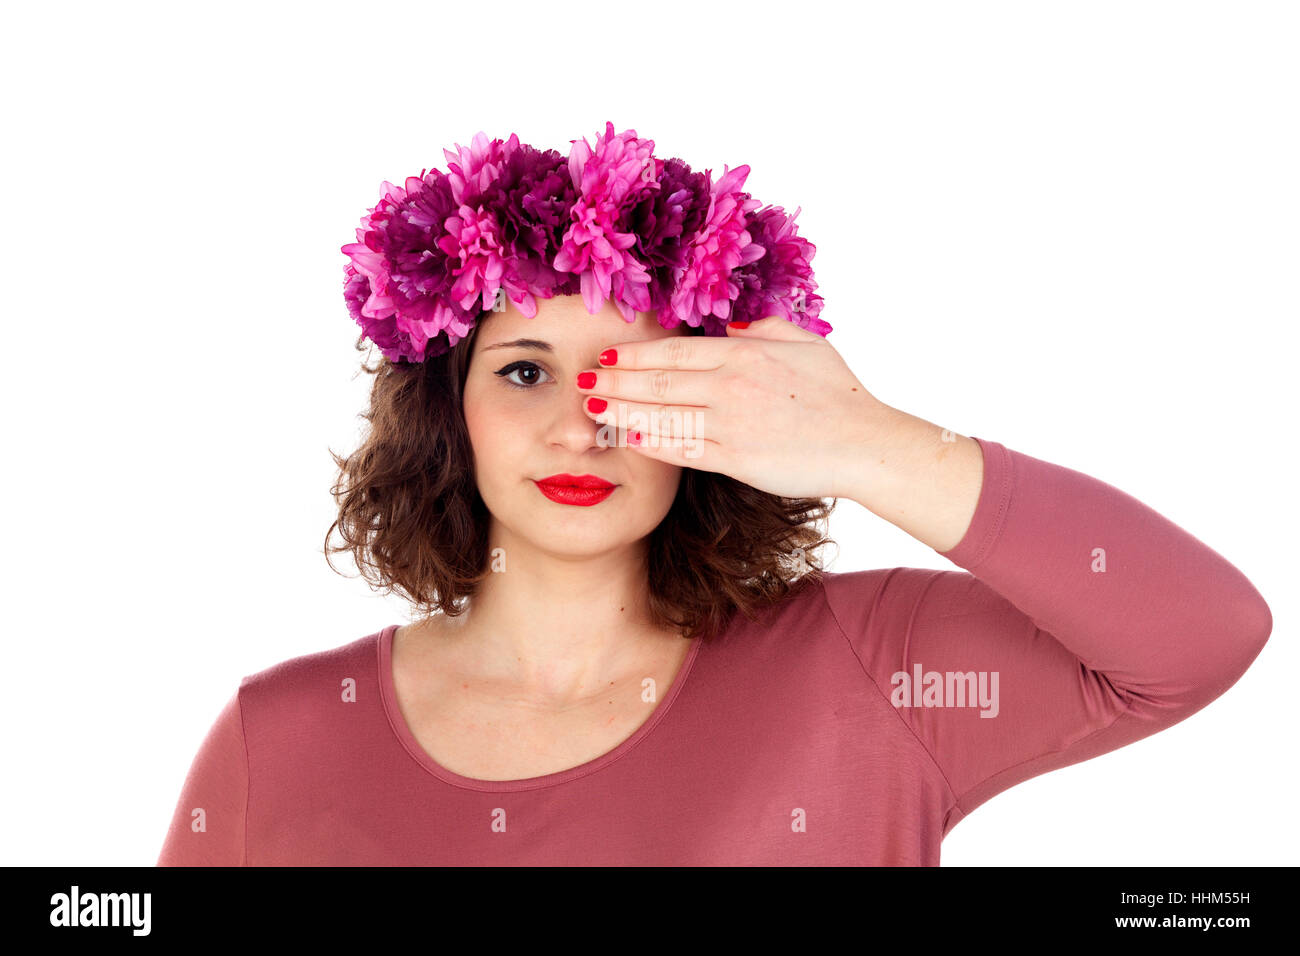 Beautiful girl with pink flowers crown covering one eye isolated on white background Stock Photo